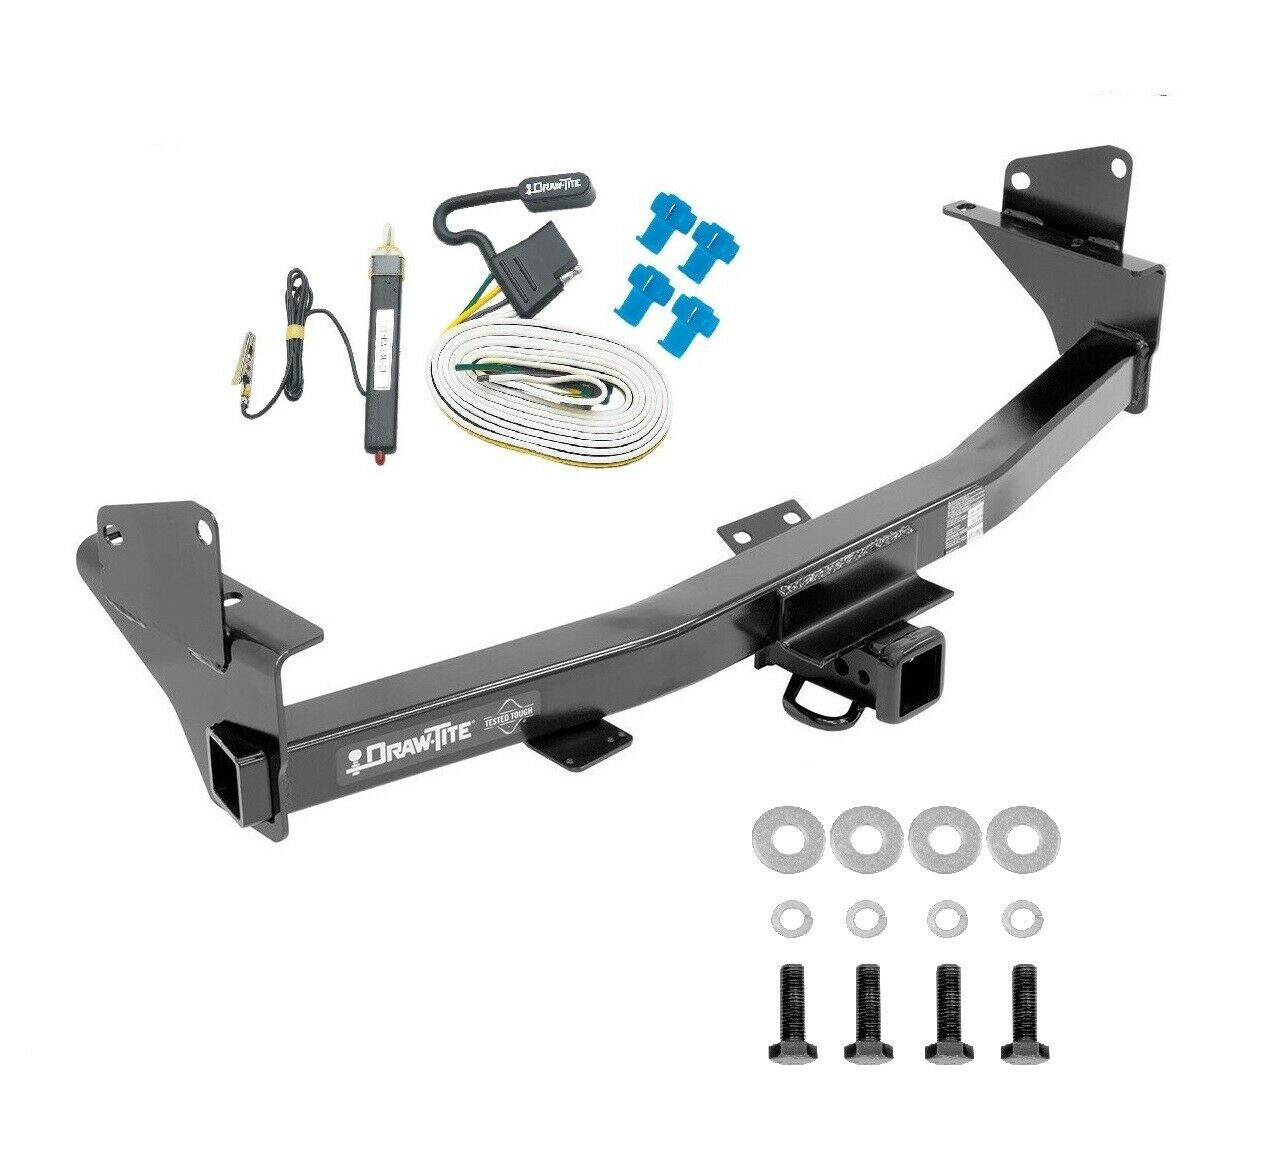 Class 3 Trailer Hitch & Wiring For 2015-2018 Chevrolet Colorado 76004 1 of  4FREE Shipping ...